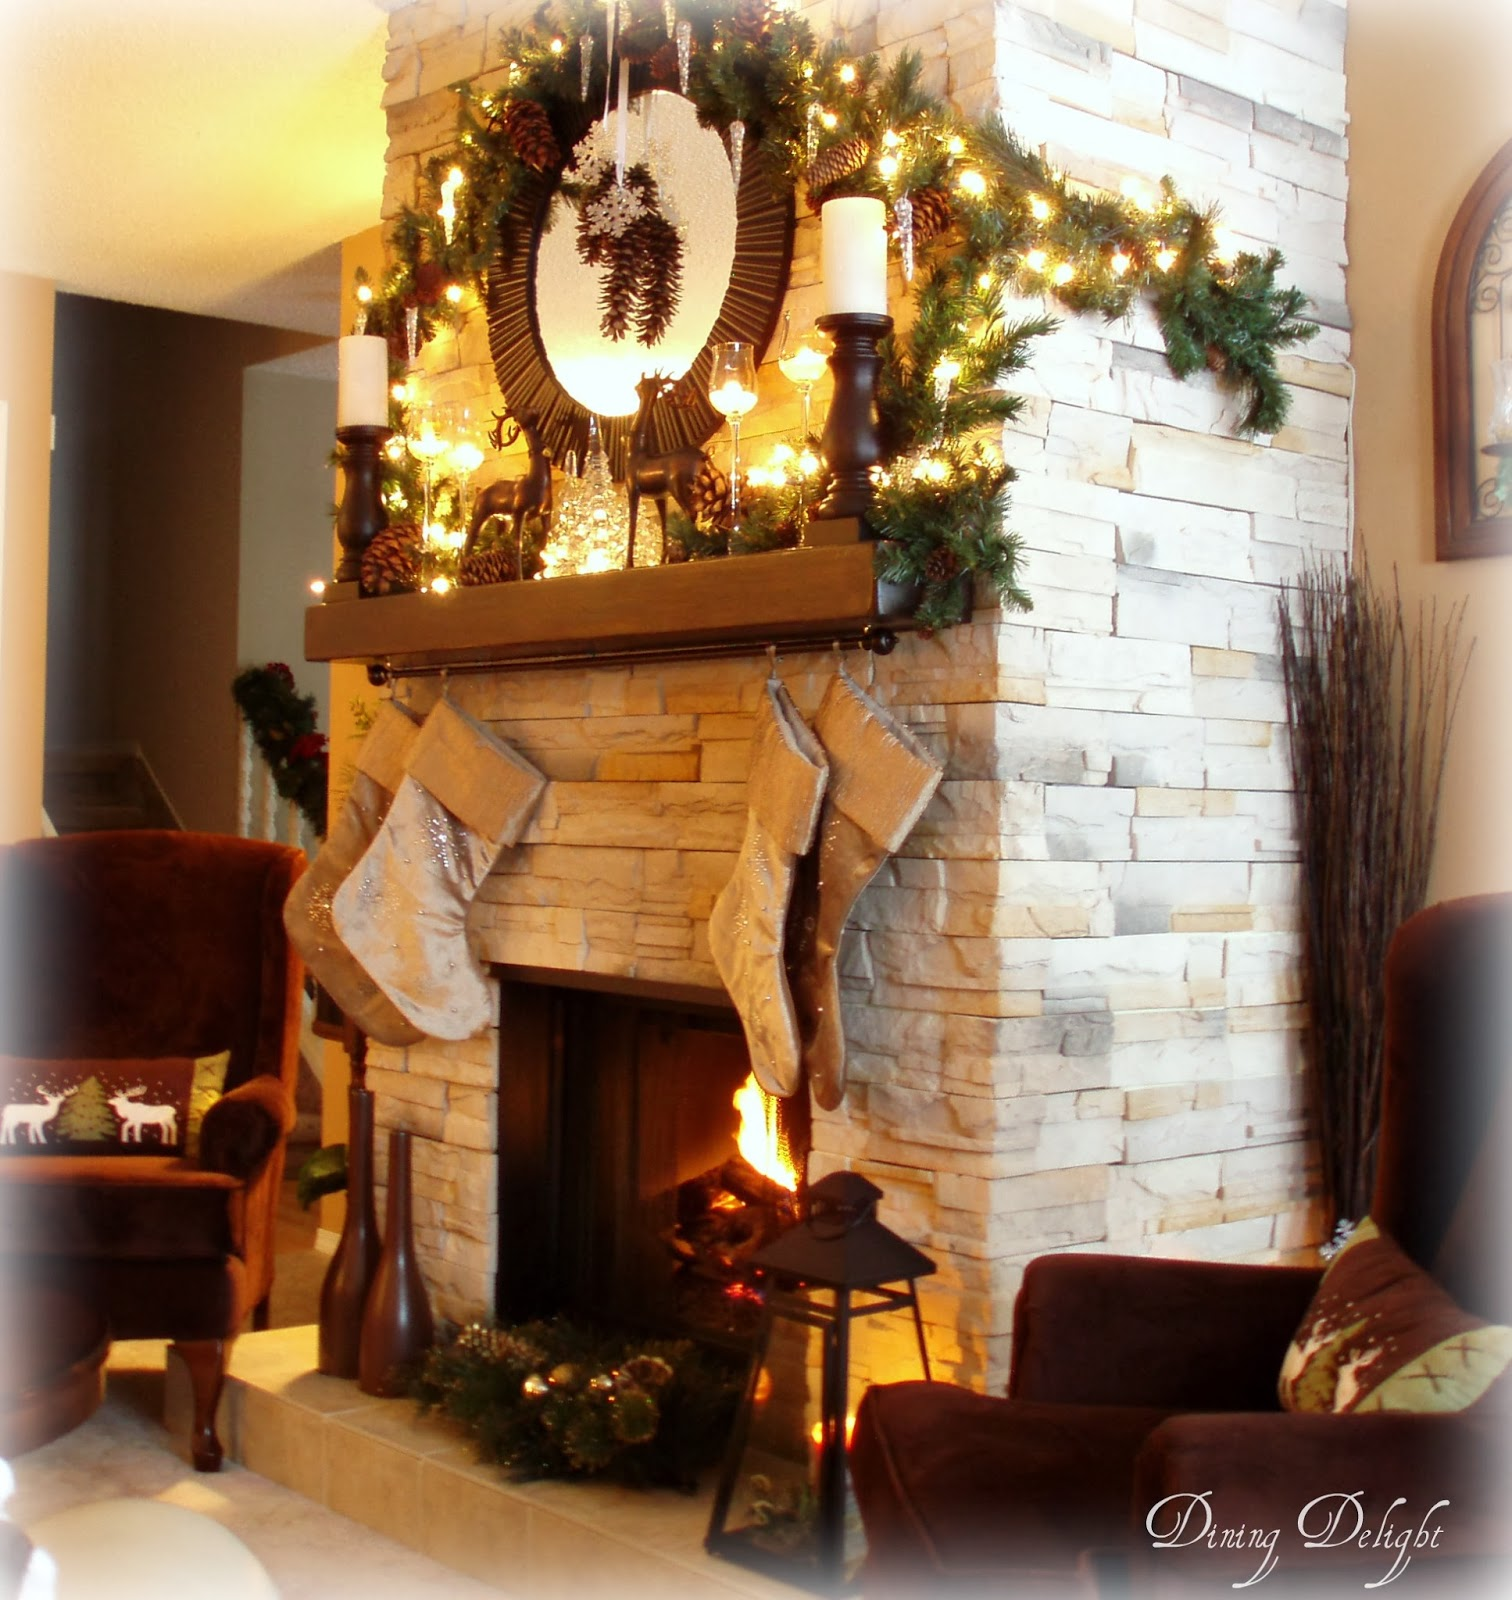 Dining delight rustic natural christmas mantel